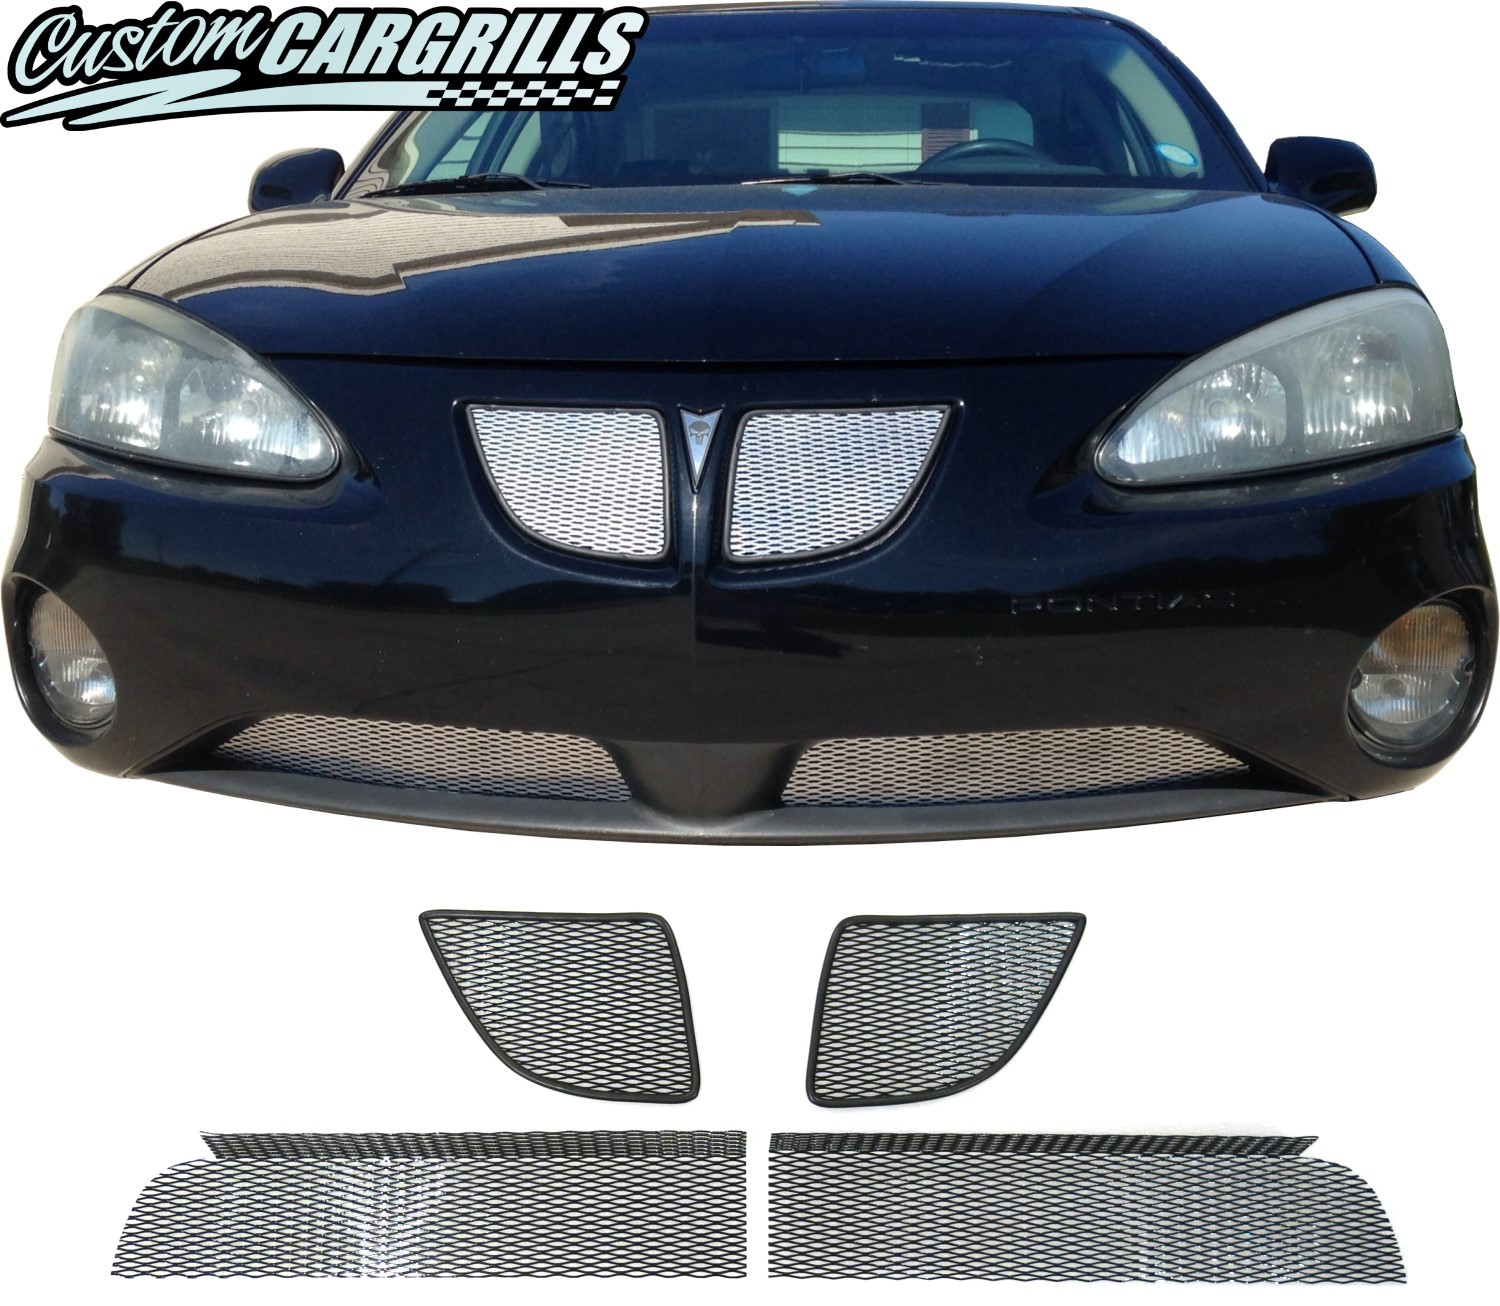 2004-08 Pontiac Grand Prix Mesh Grill Kit